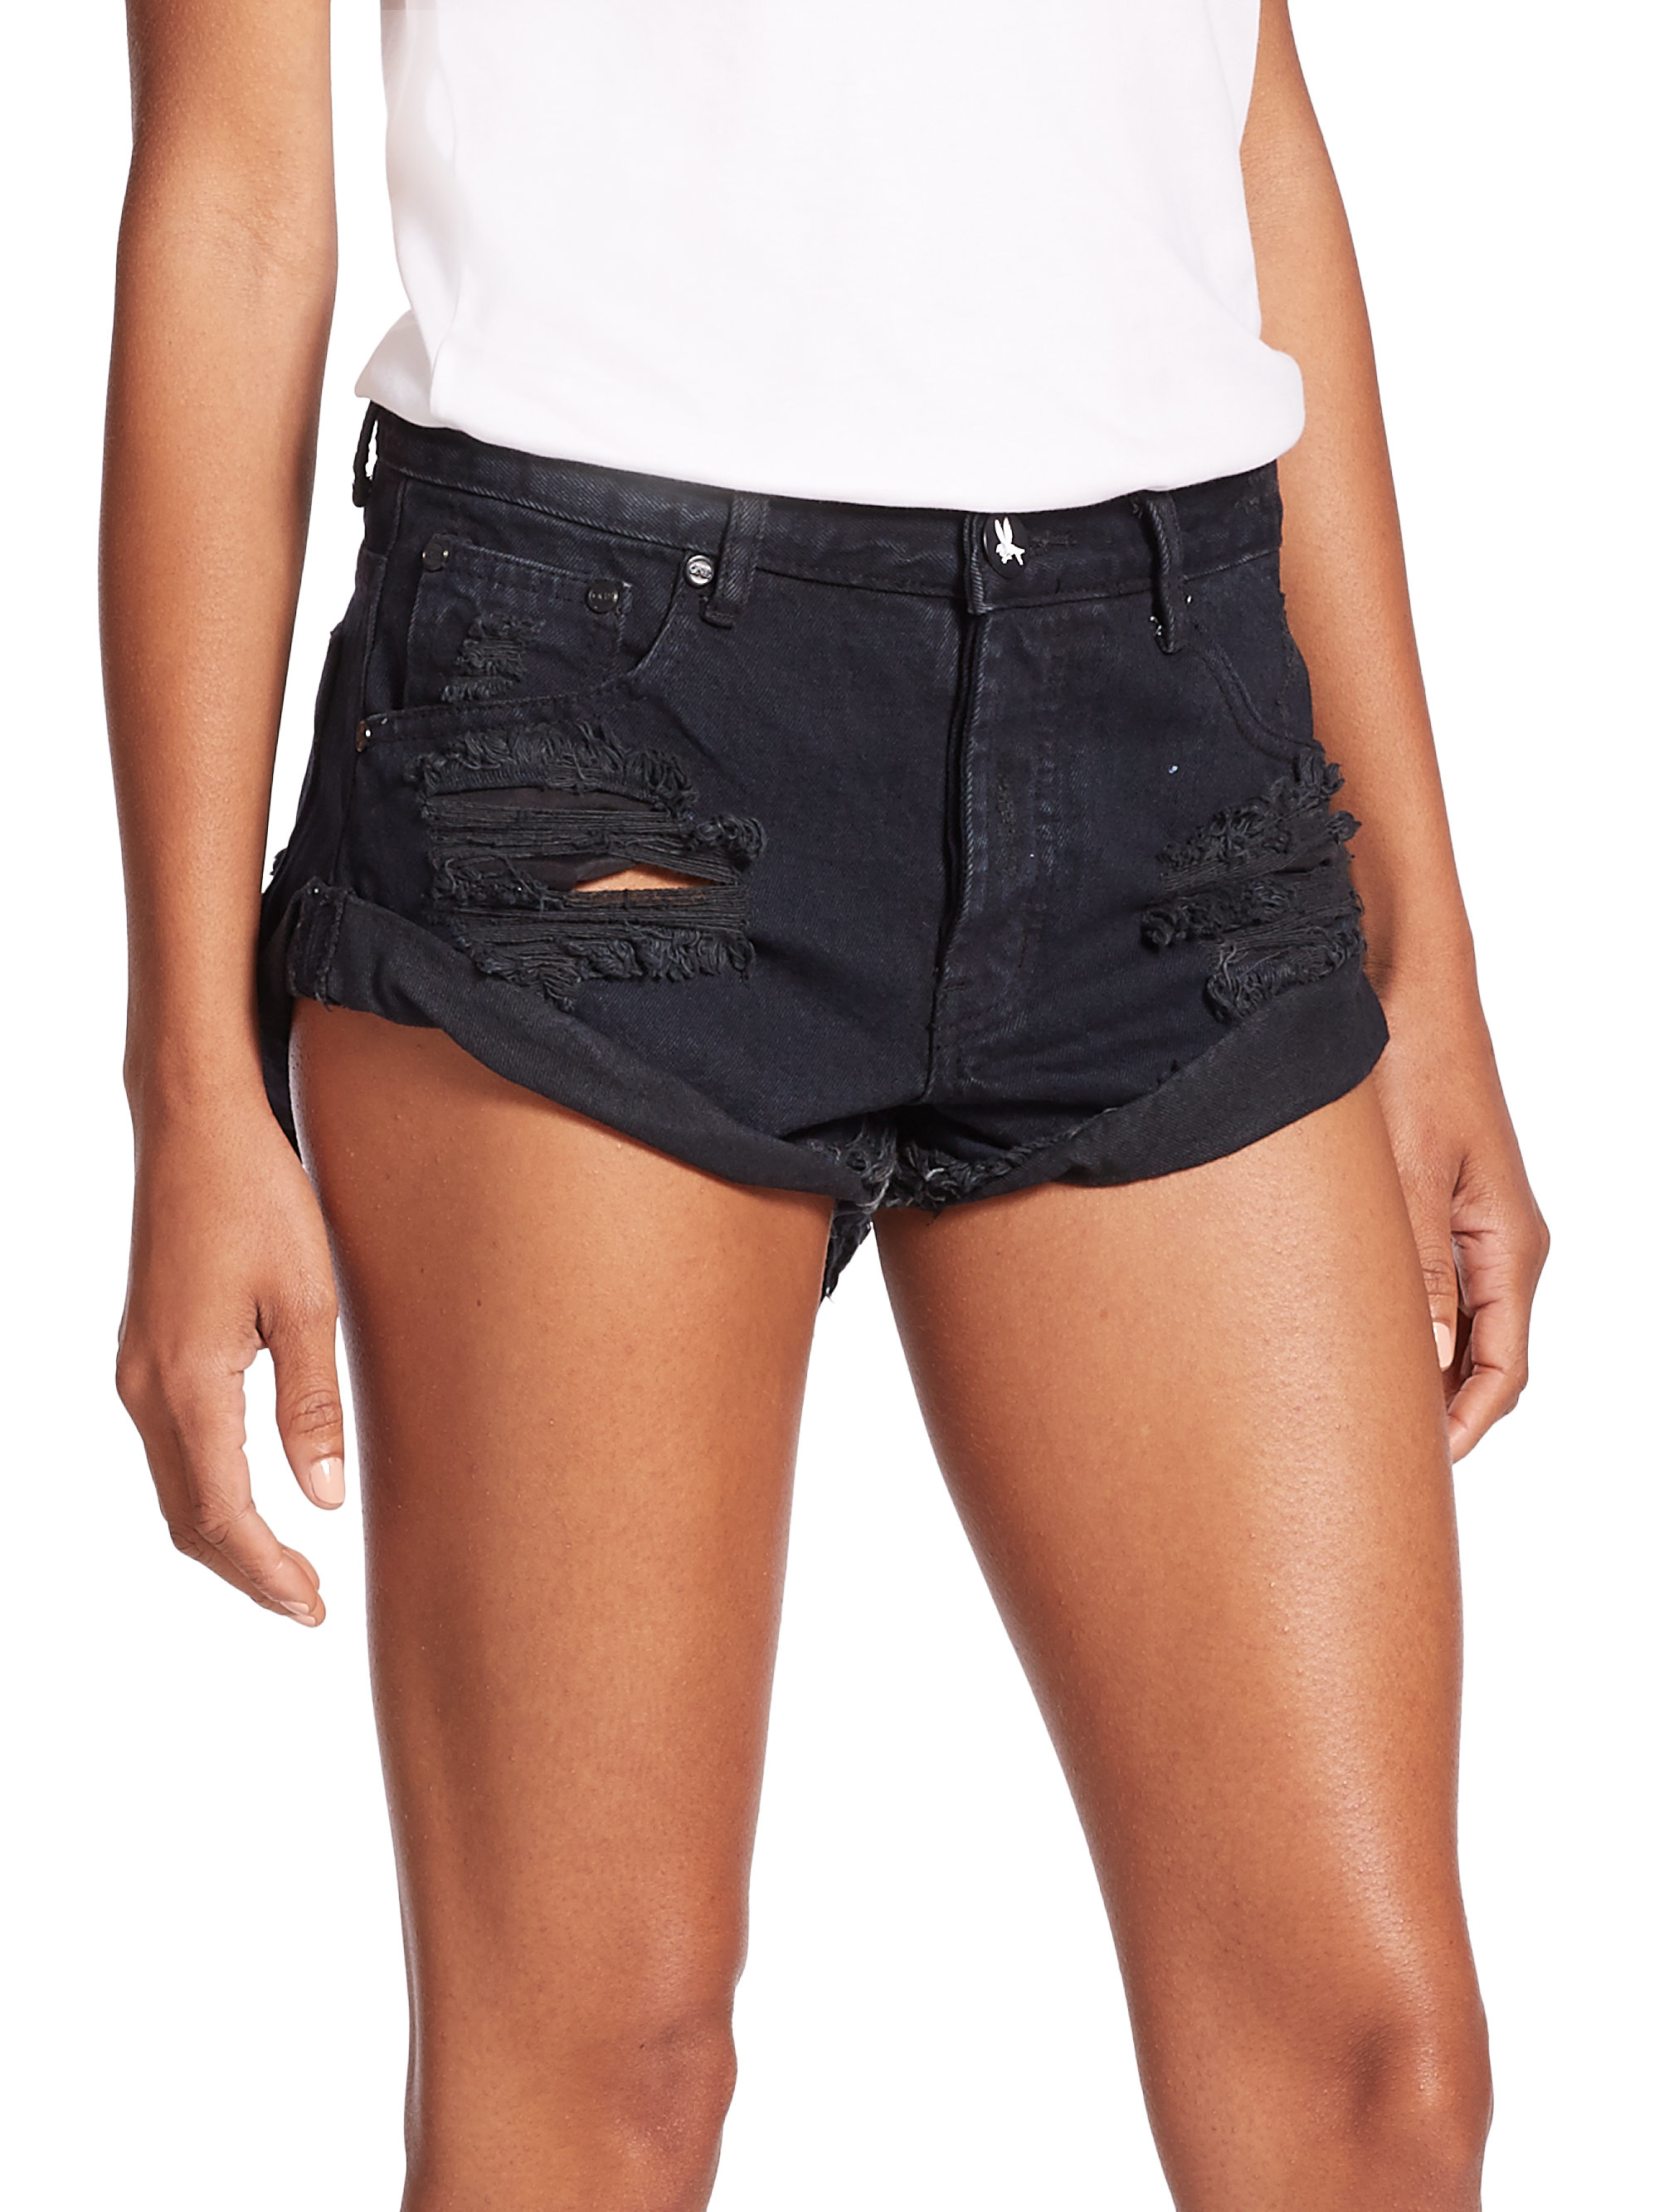 Shop black denim shorts at Neiman Marcus, where you will find free shipping on the latest in fashion from top designers.